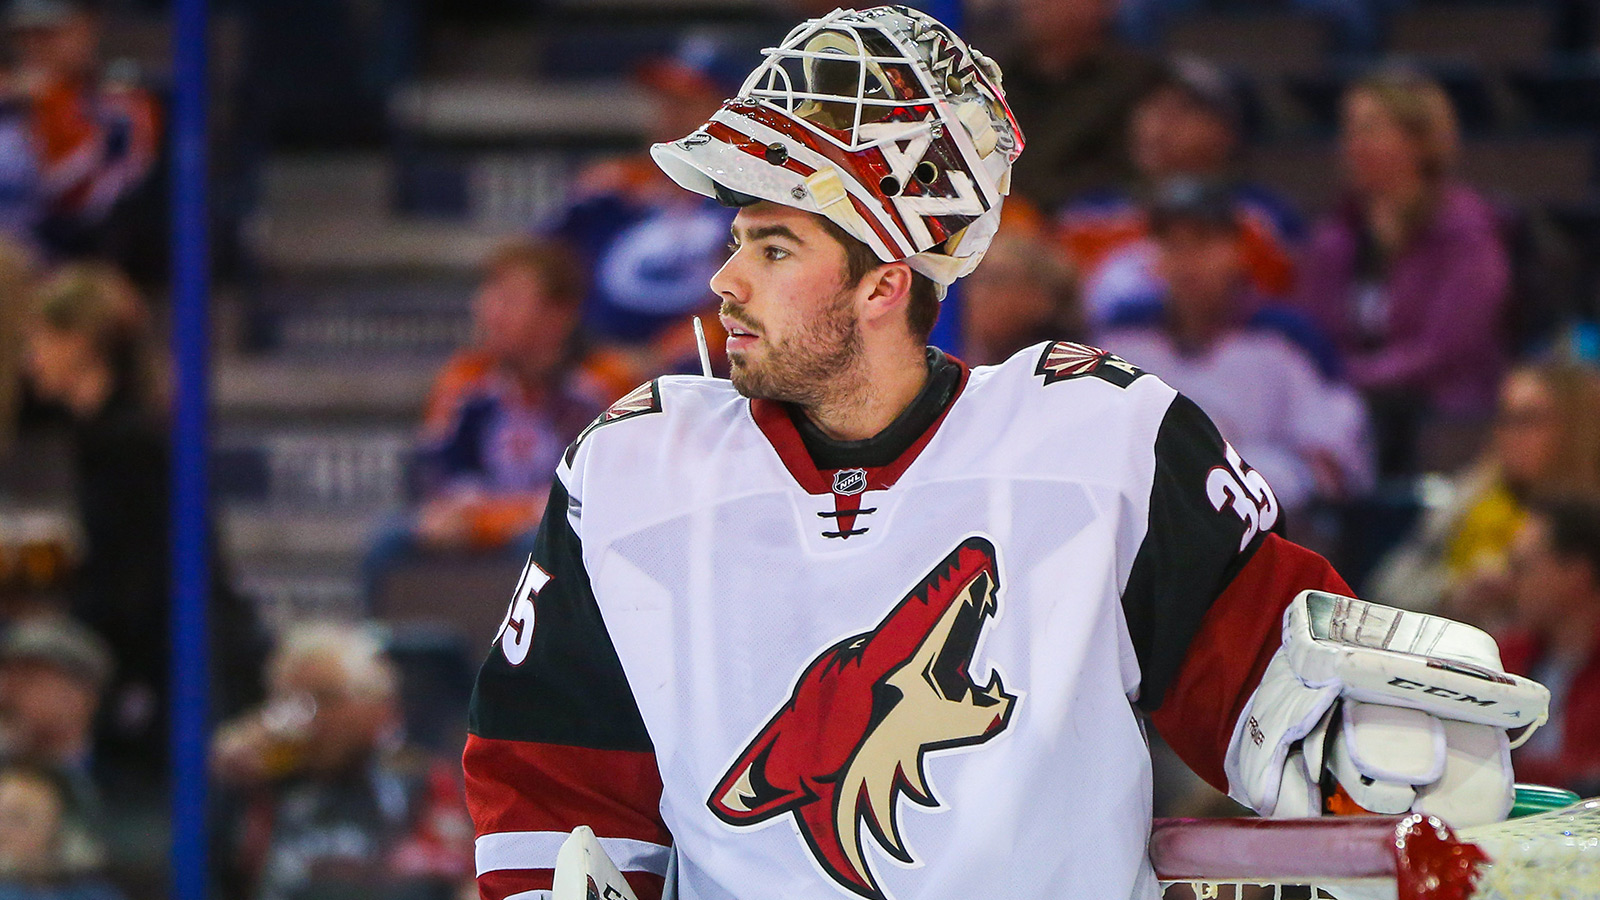 Coyotes' Domingue accuses officials of preferential treatment